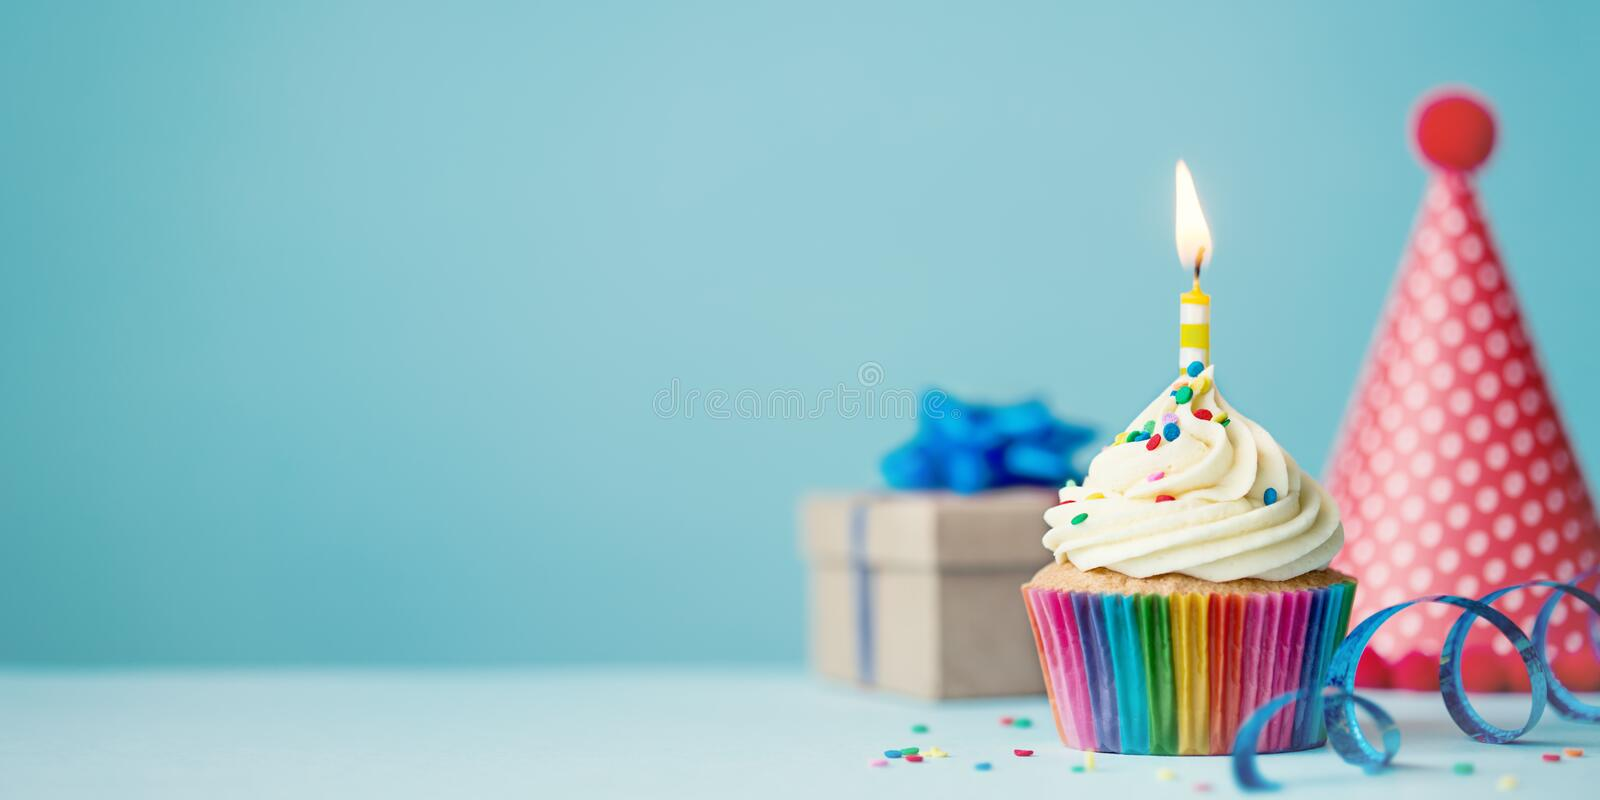 Birthday cupcake with candle royalty free stock image